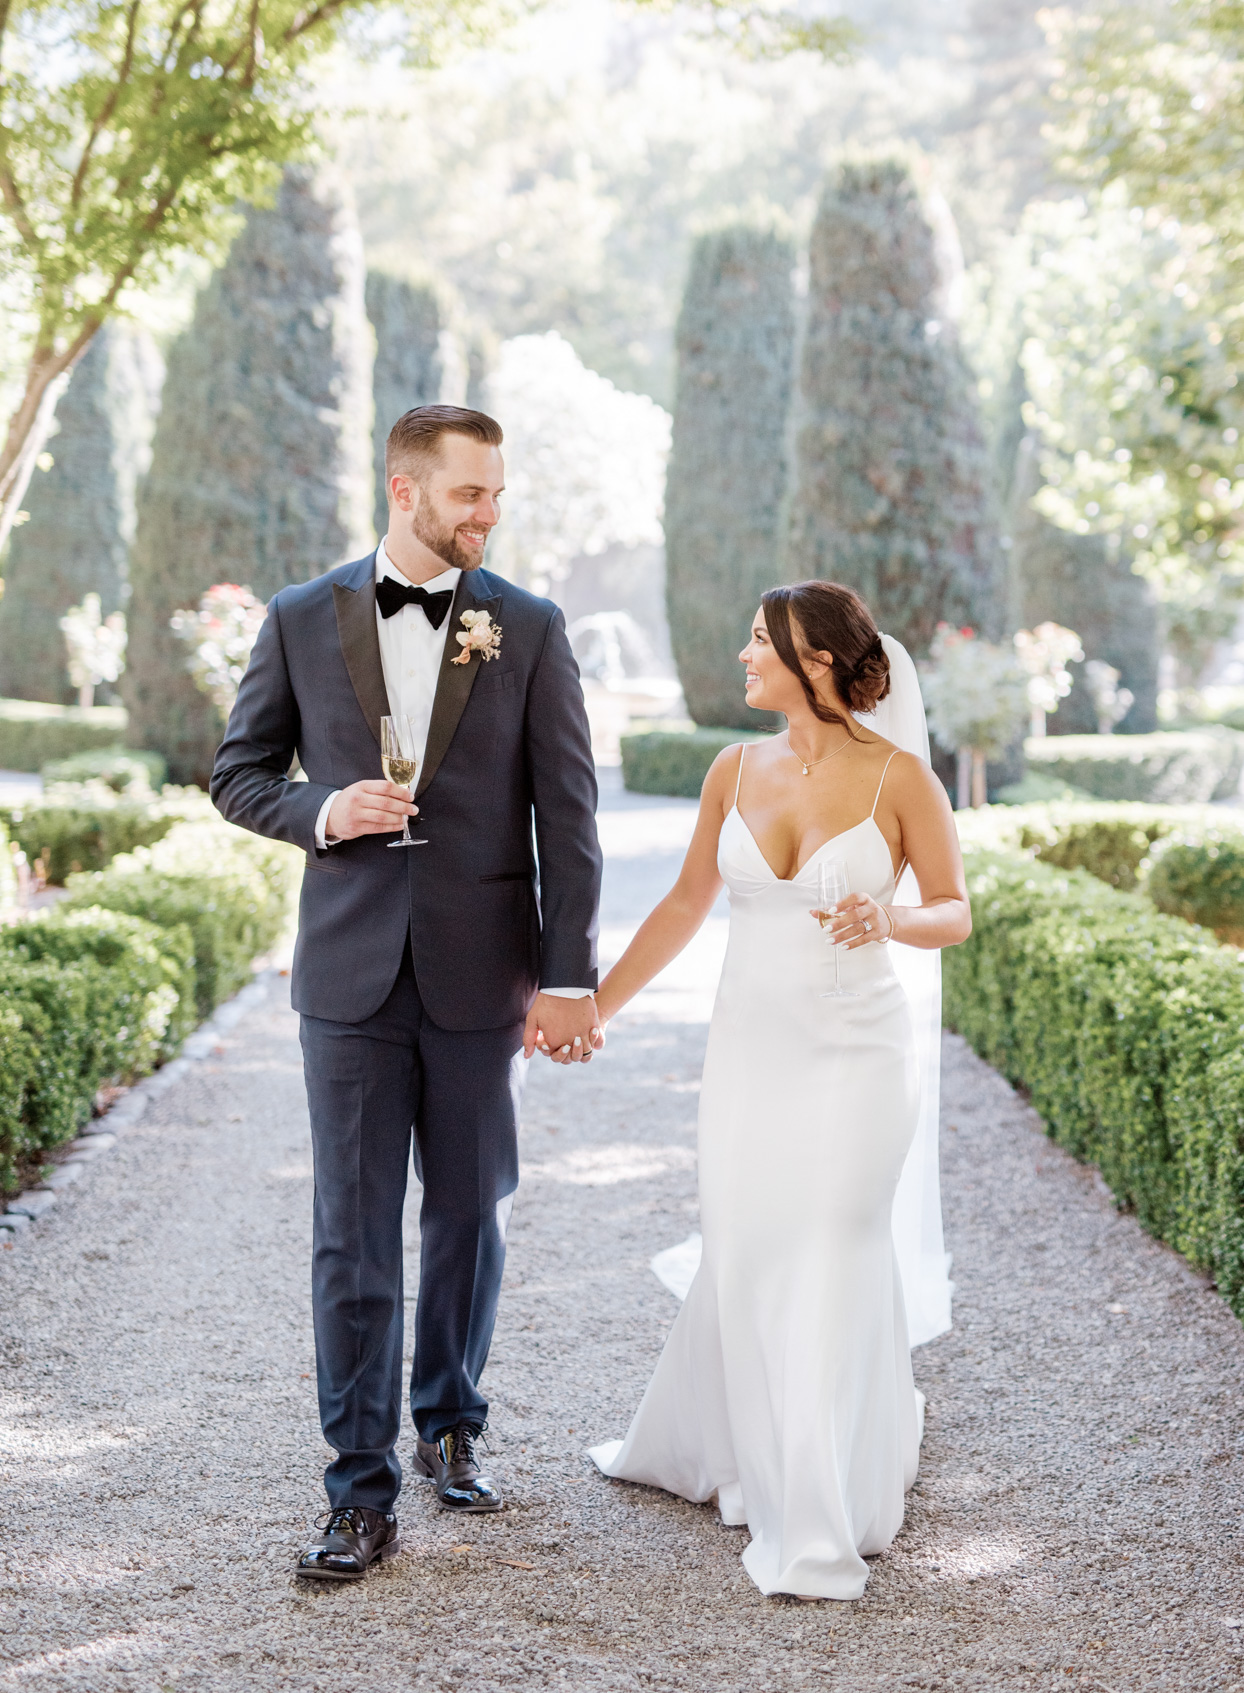 couple holding hands and champagne glasses on garden path